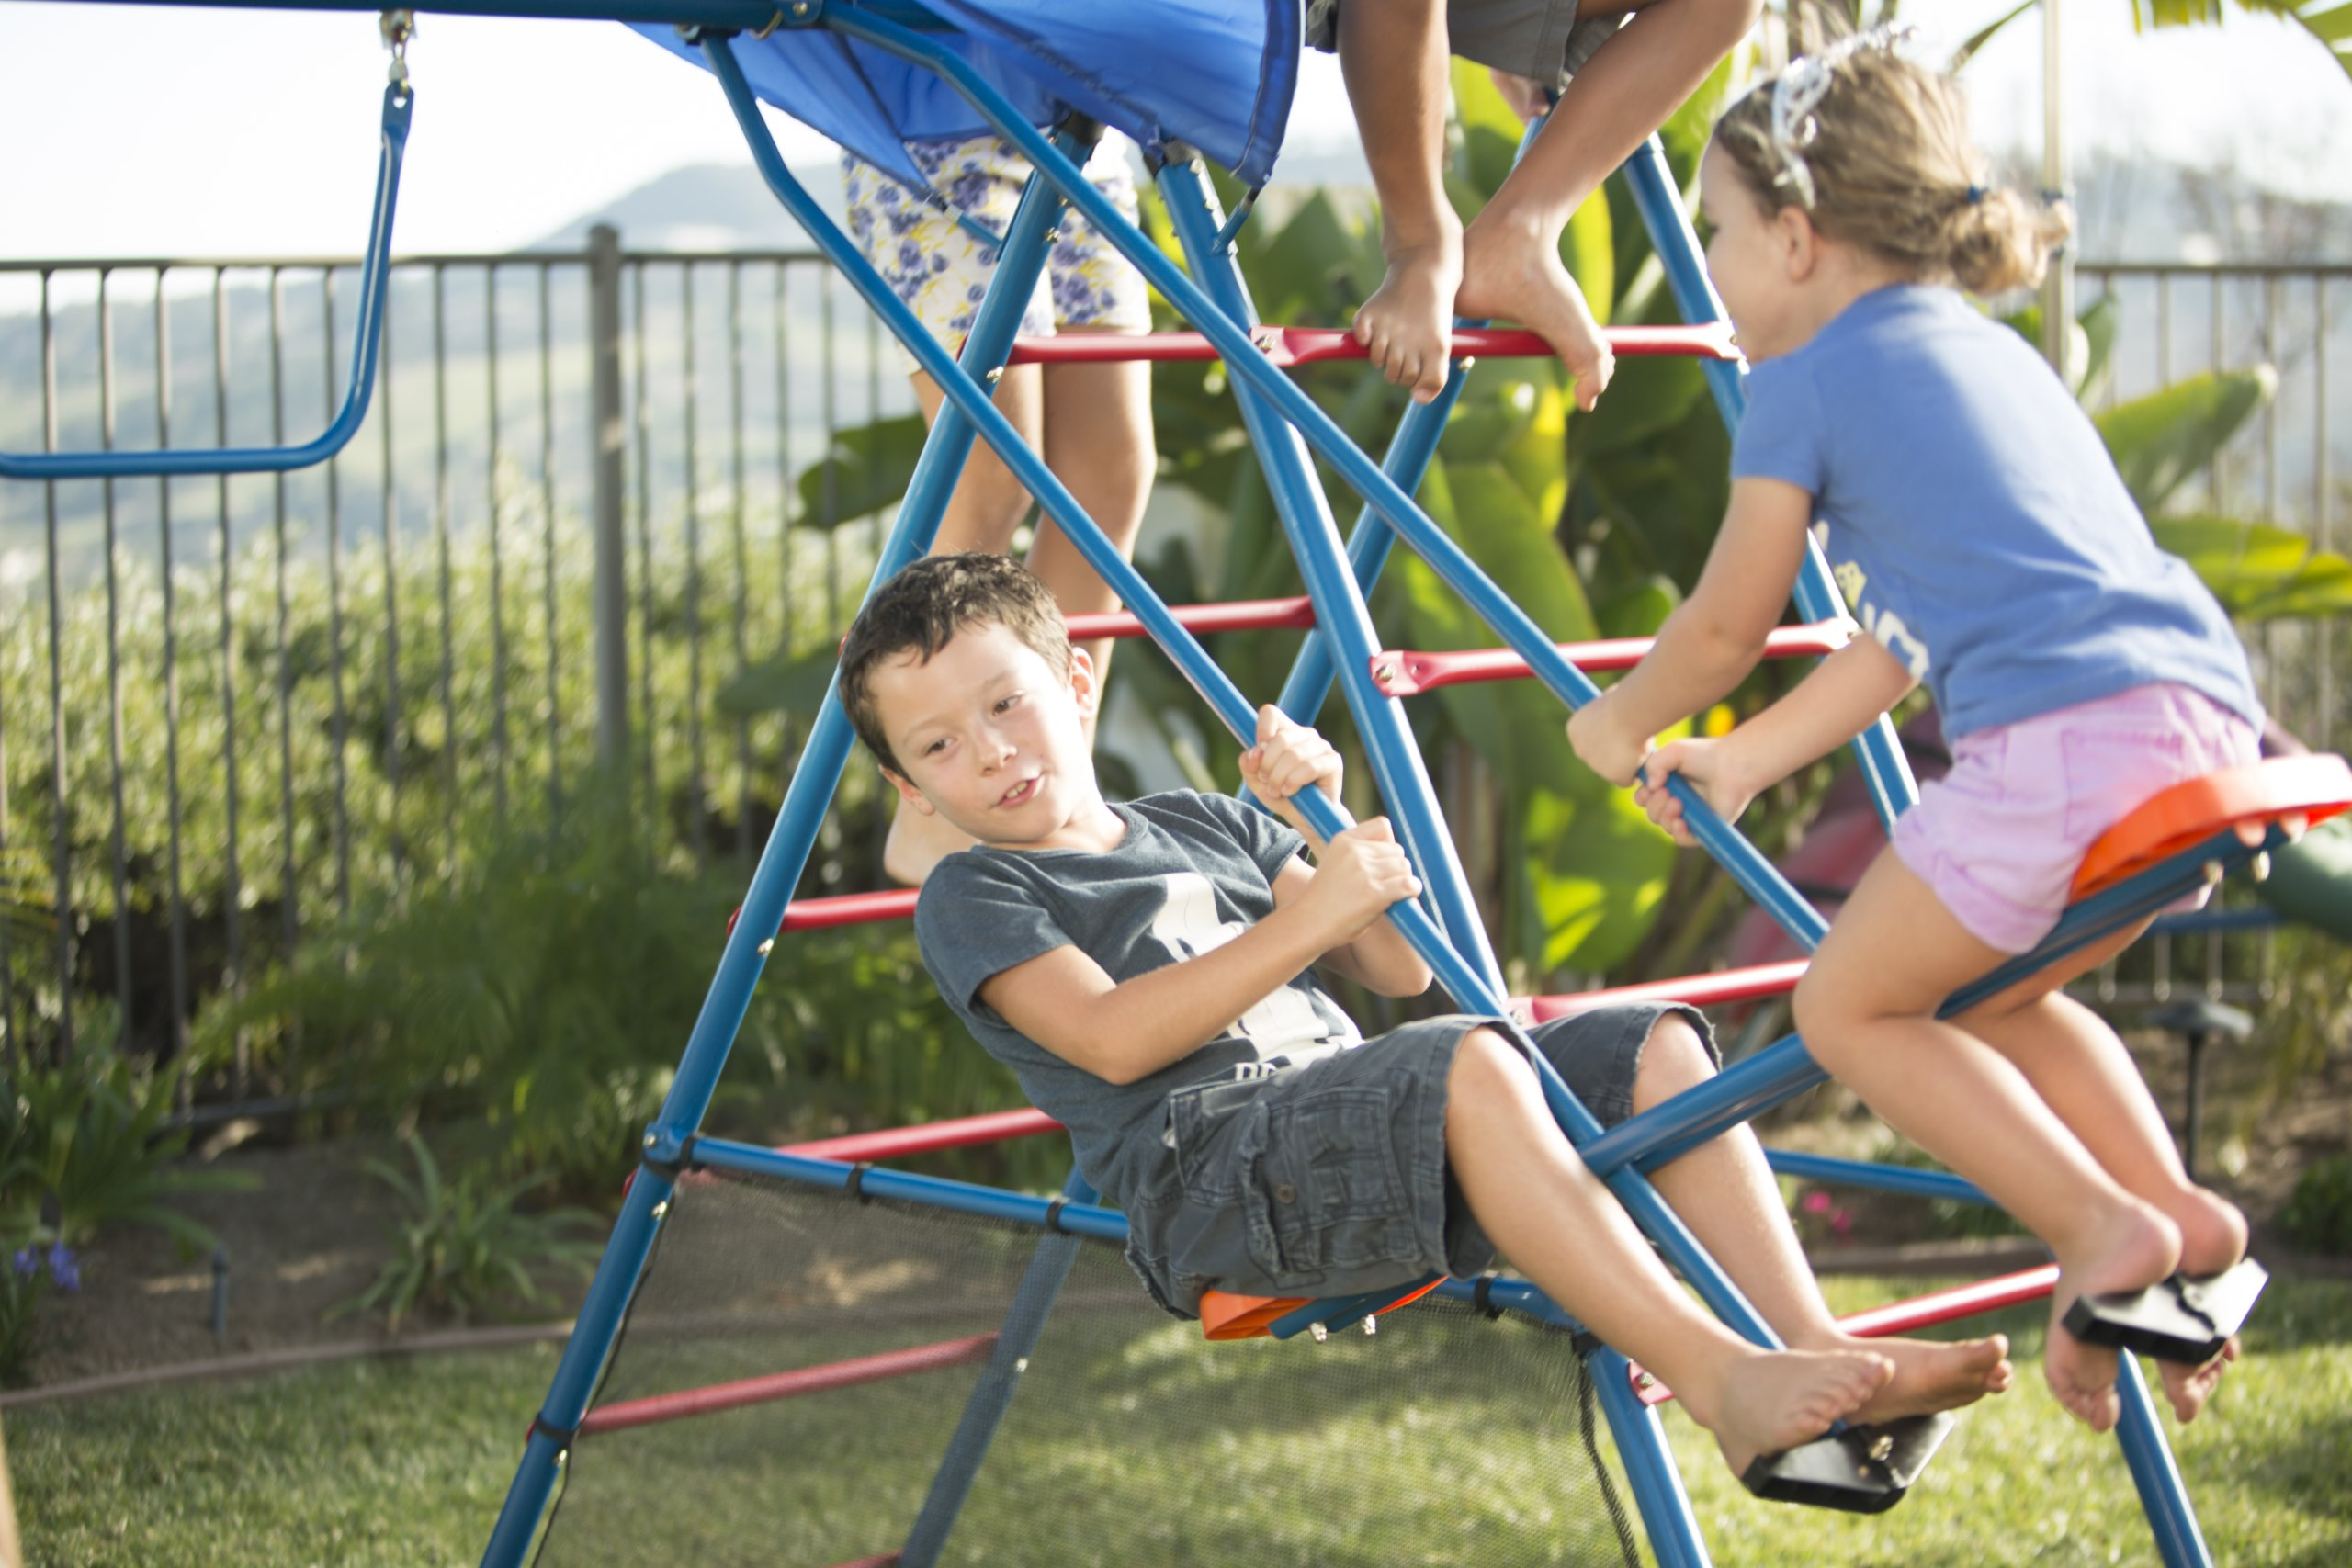 Ironkids Challenge 100 Metal Swing Set with Ladder Climber and UV Protective Sunshade by IRONKIDS (Image #4)